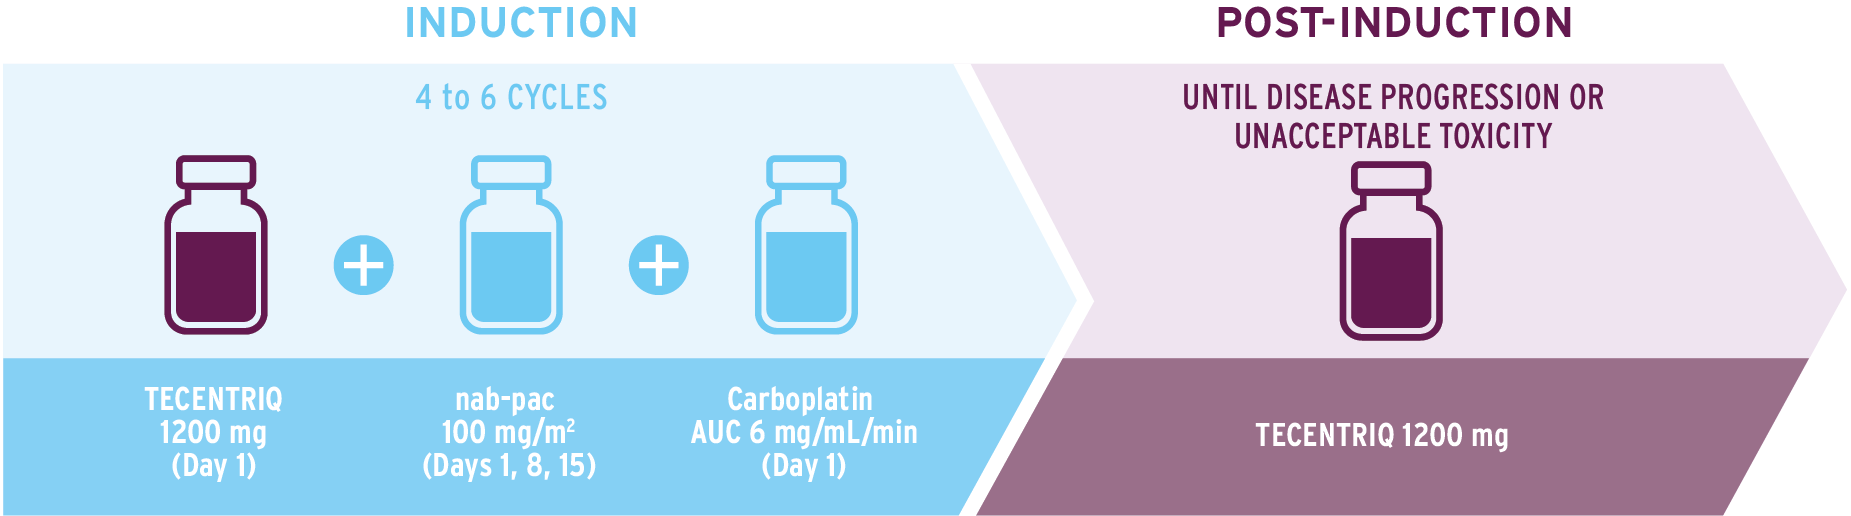 Infographic to illustrate how to administer TECENTRIQ in combination with nab-paclitaxel and carboplatin.